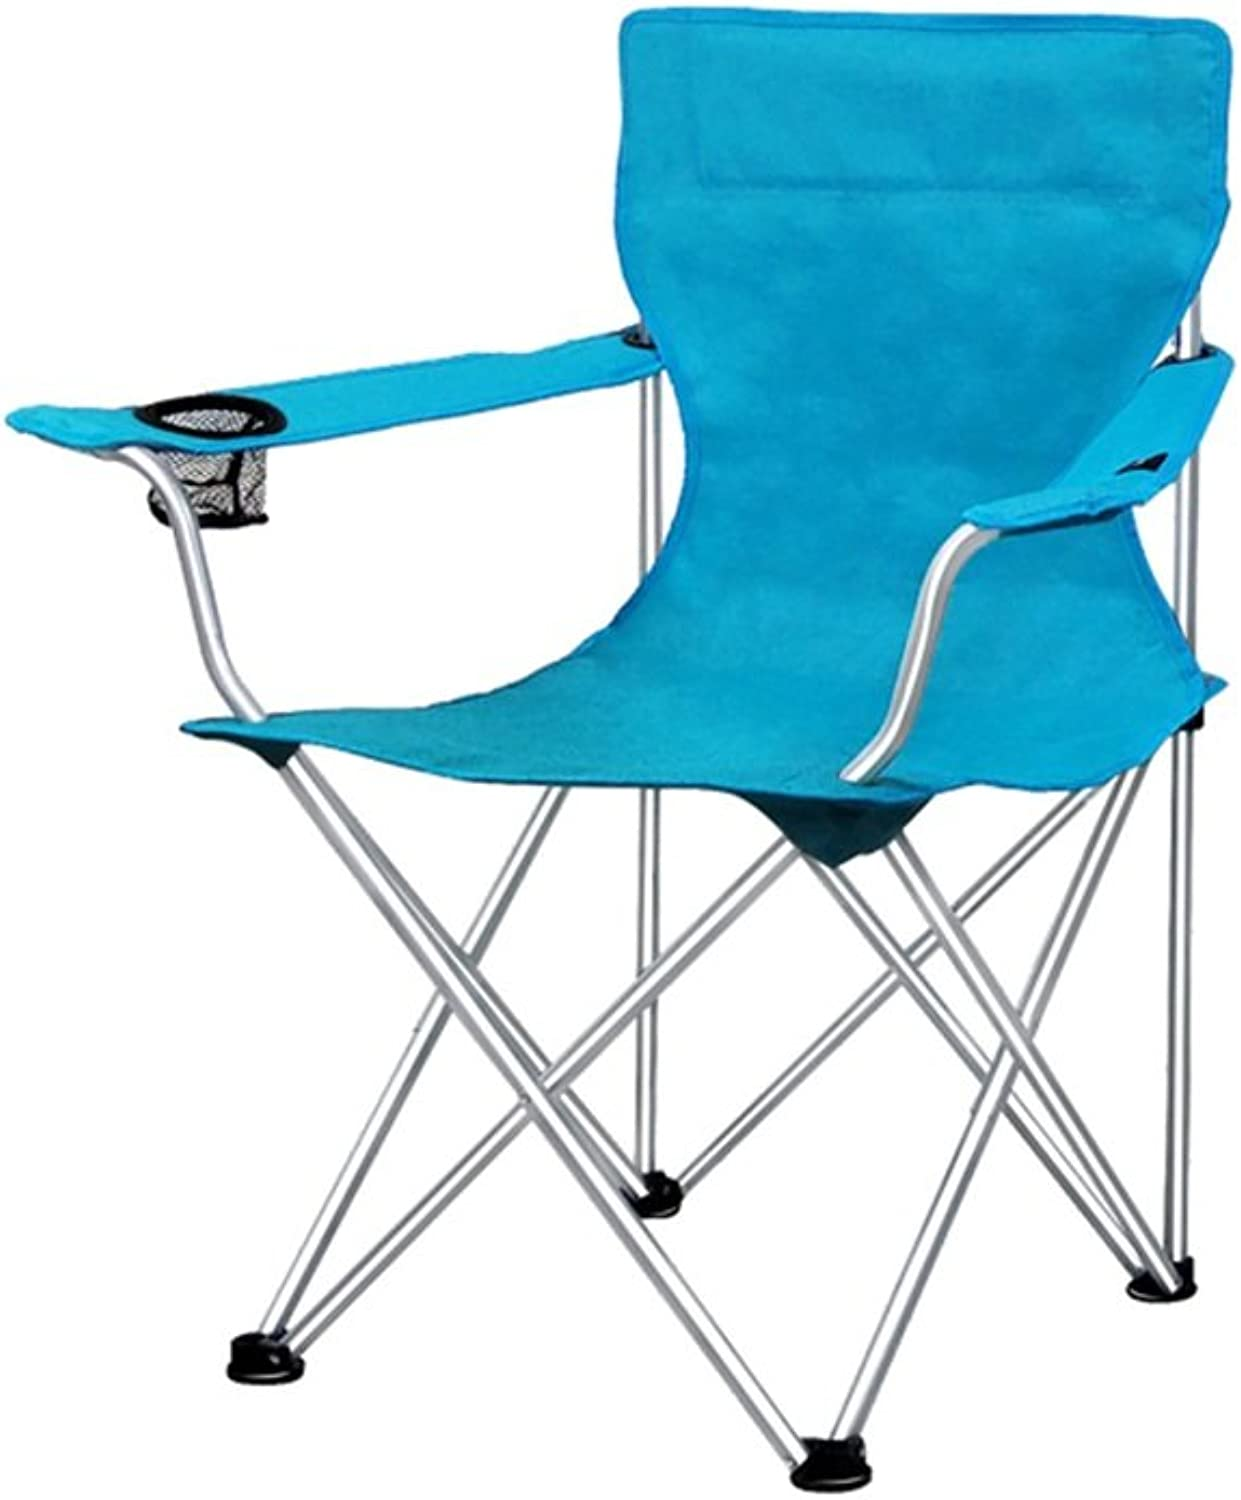 Stools, Folding Seat Ultralight Ergonomics Mini Mazar Fishing Chairs Portable Leisure Chair